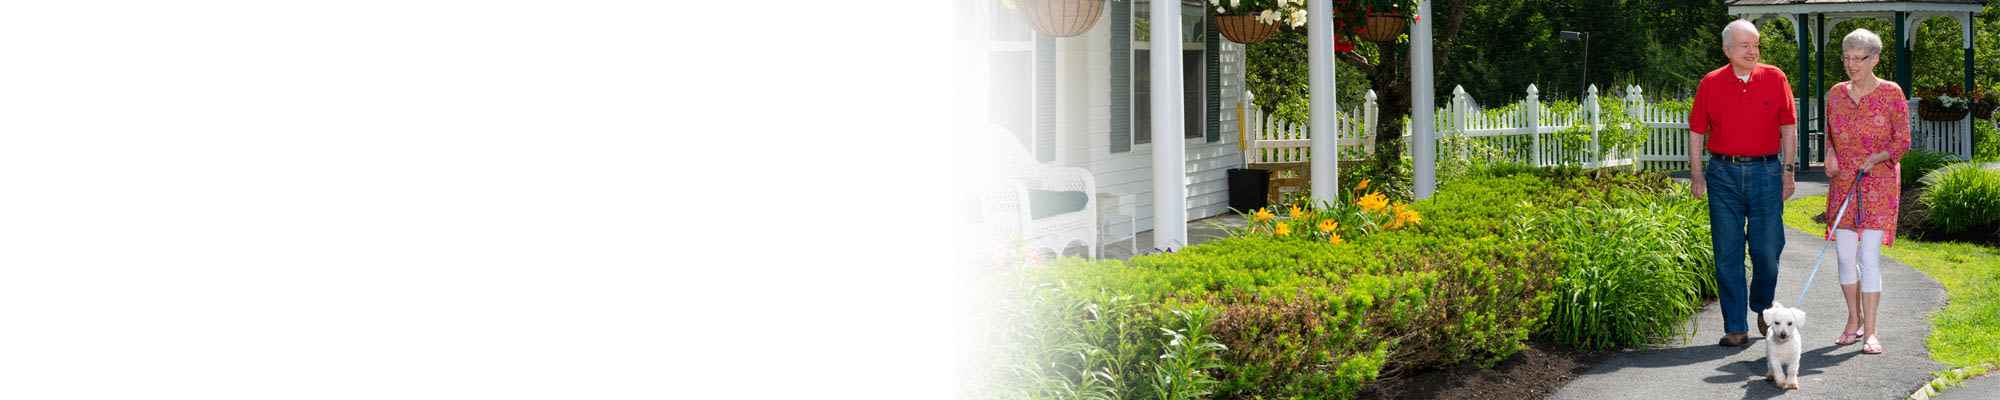 Assisted living at Wheelock Terrace in Hanover, New Hampshire